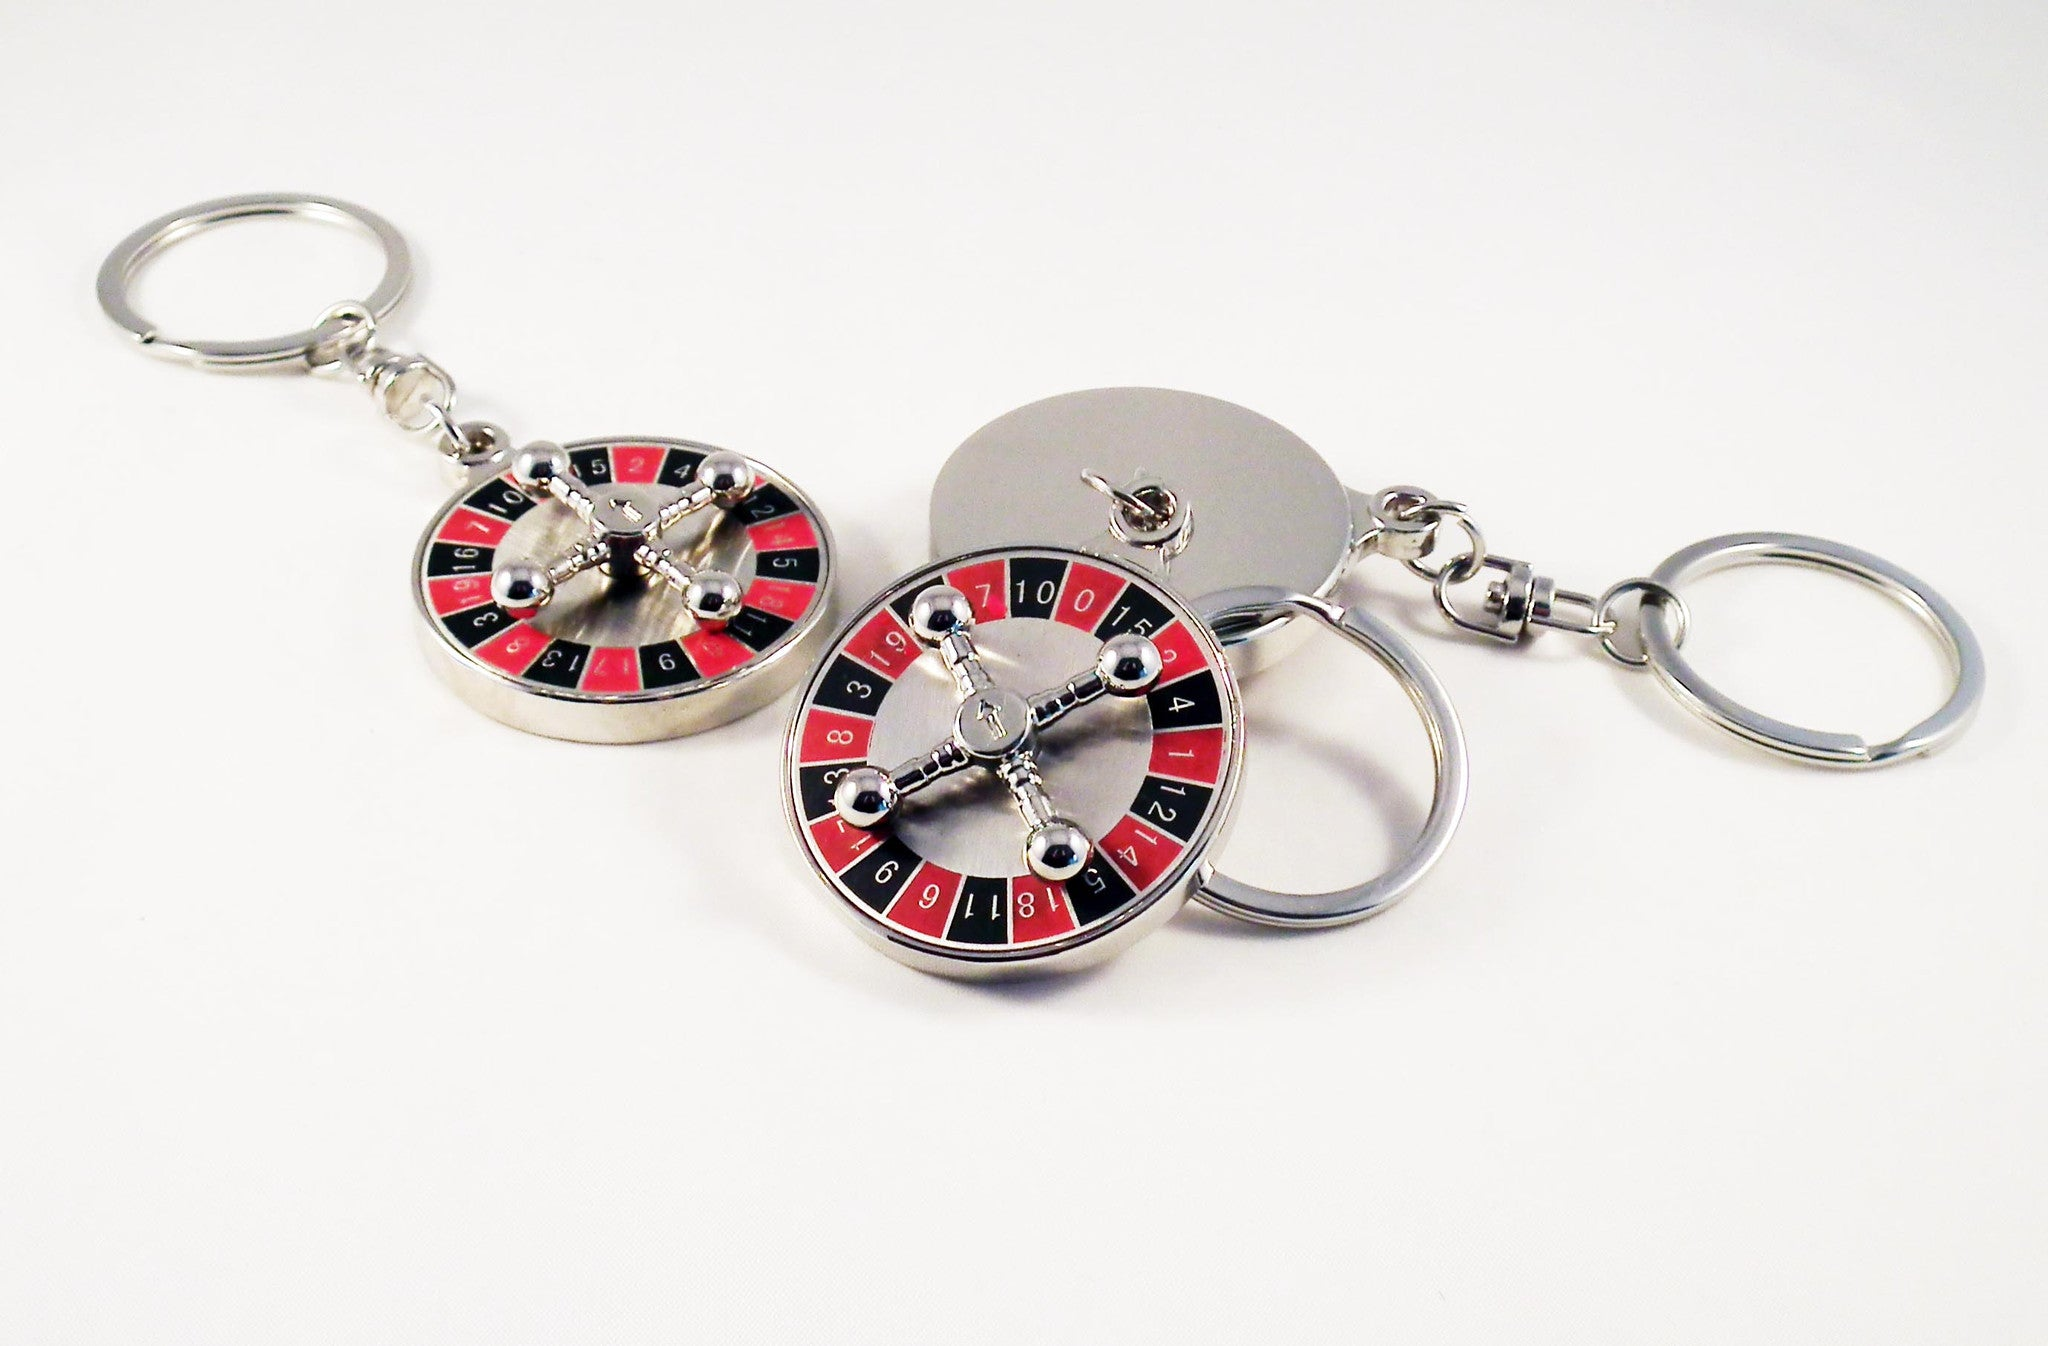 Porte-Clé Roulette Casino Keychain - No Mercy Making